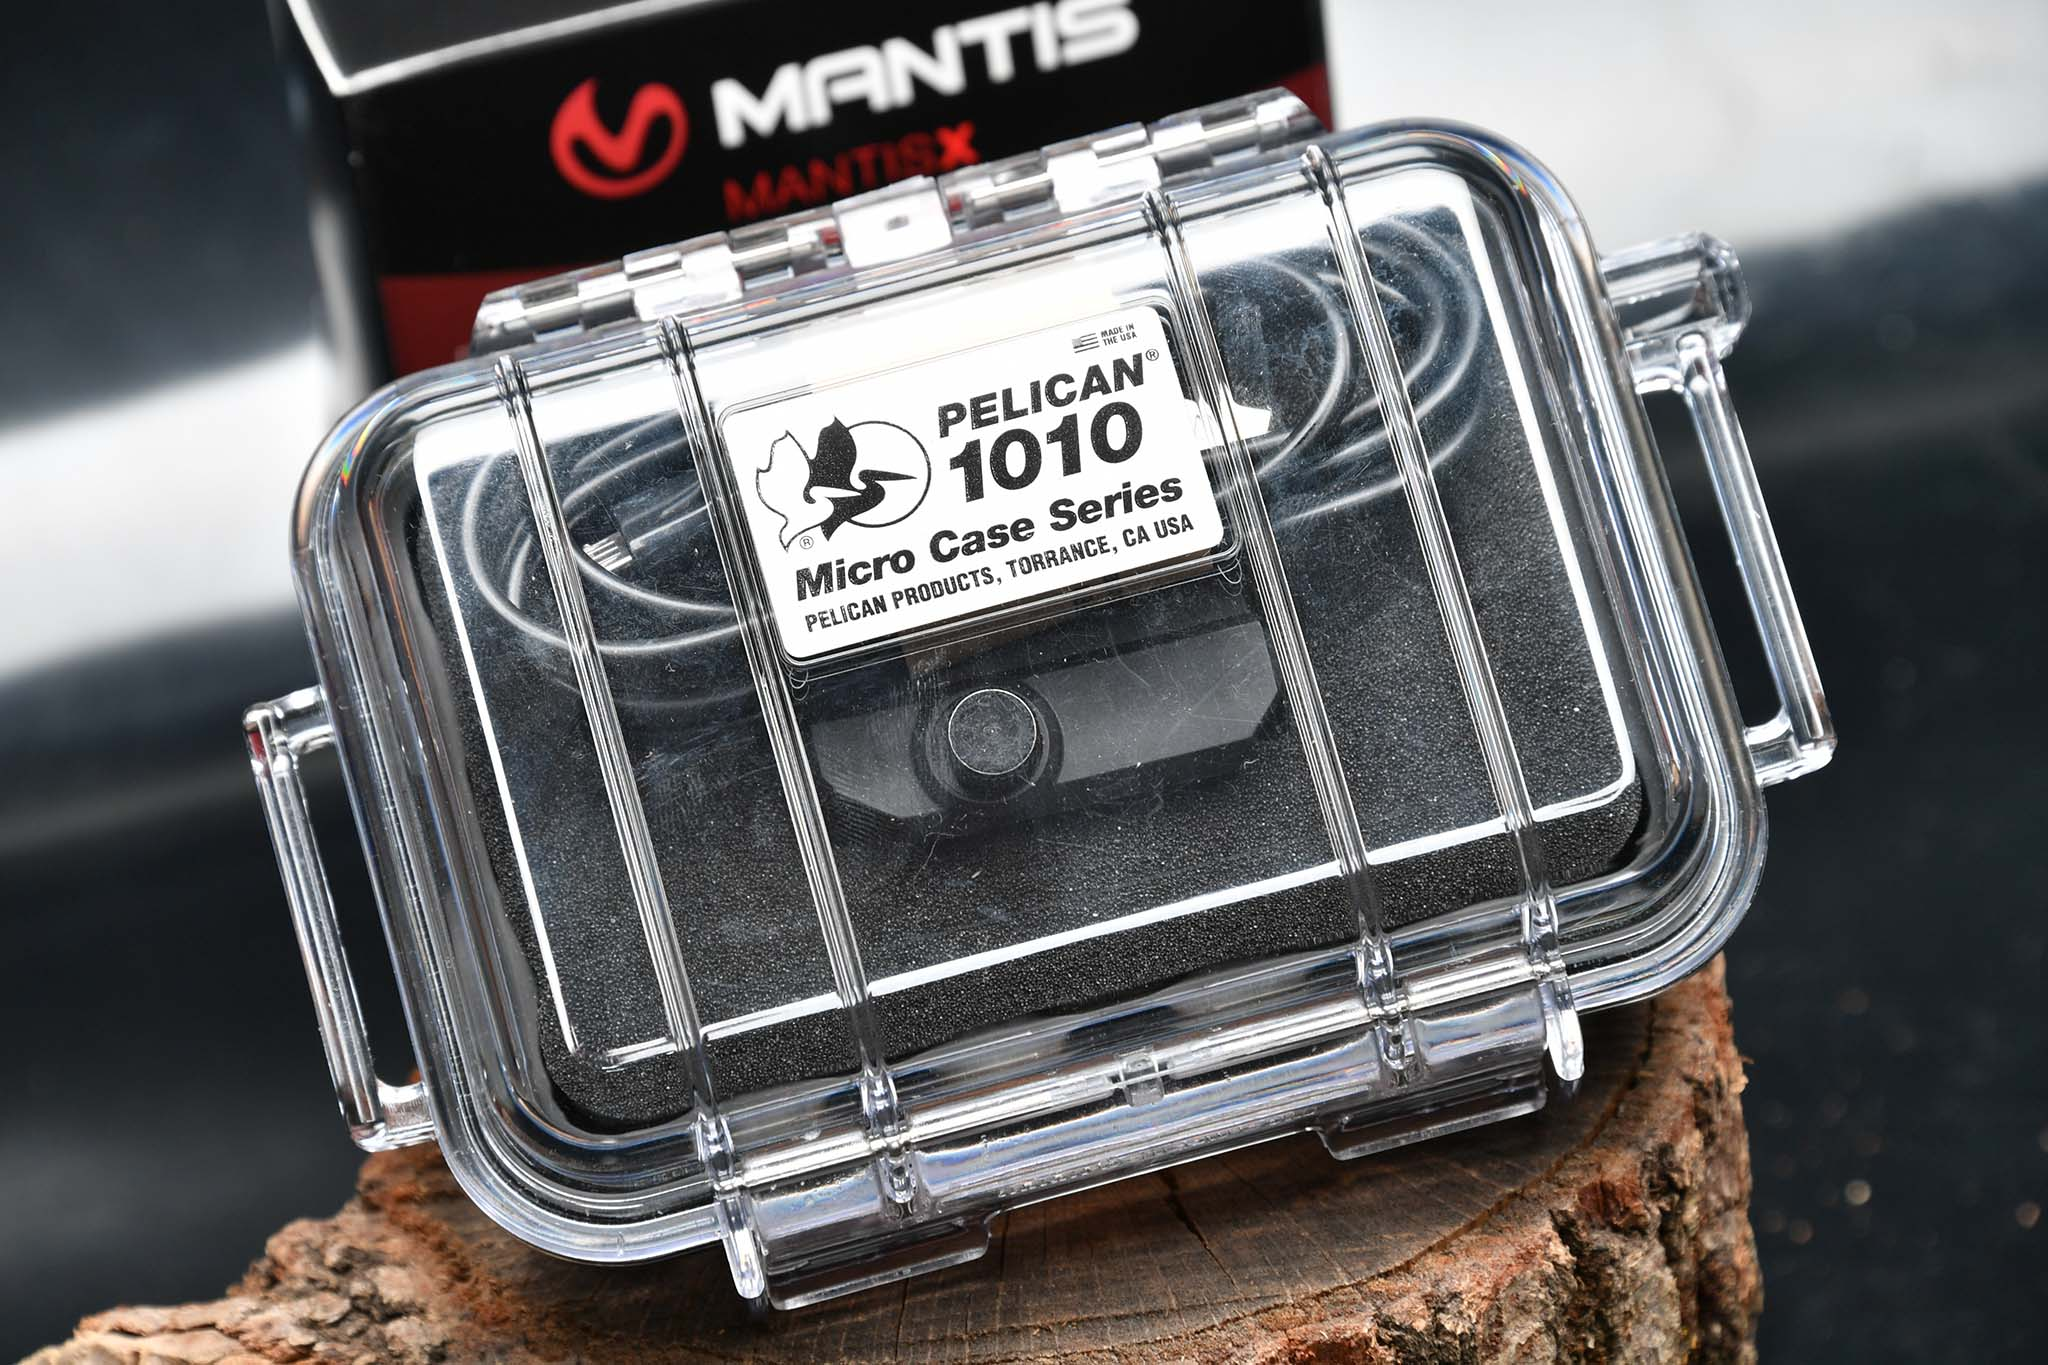 The MantisX training system inside the Pelican case